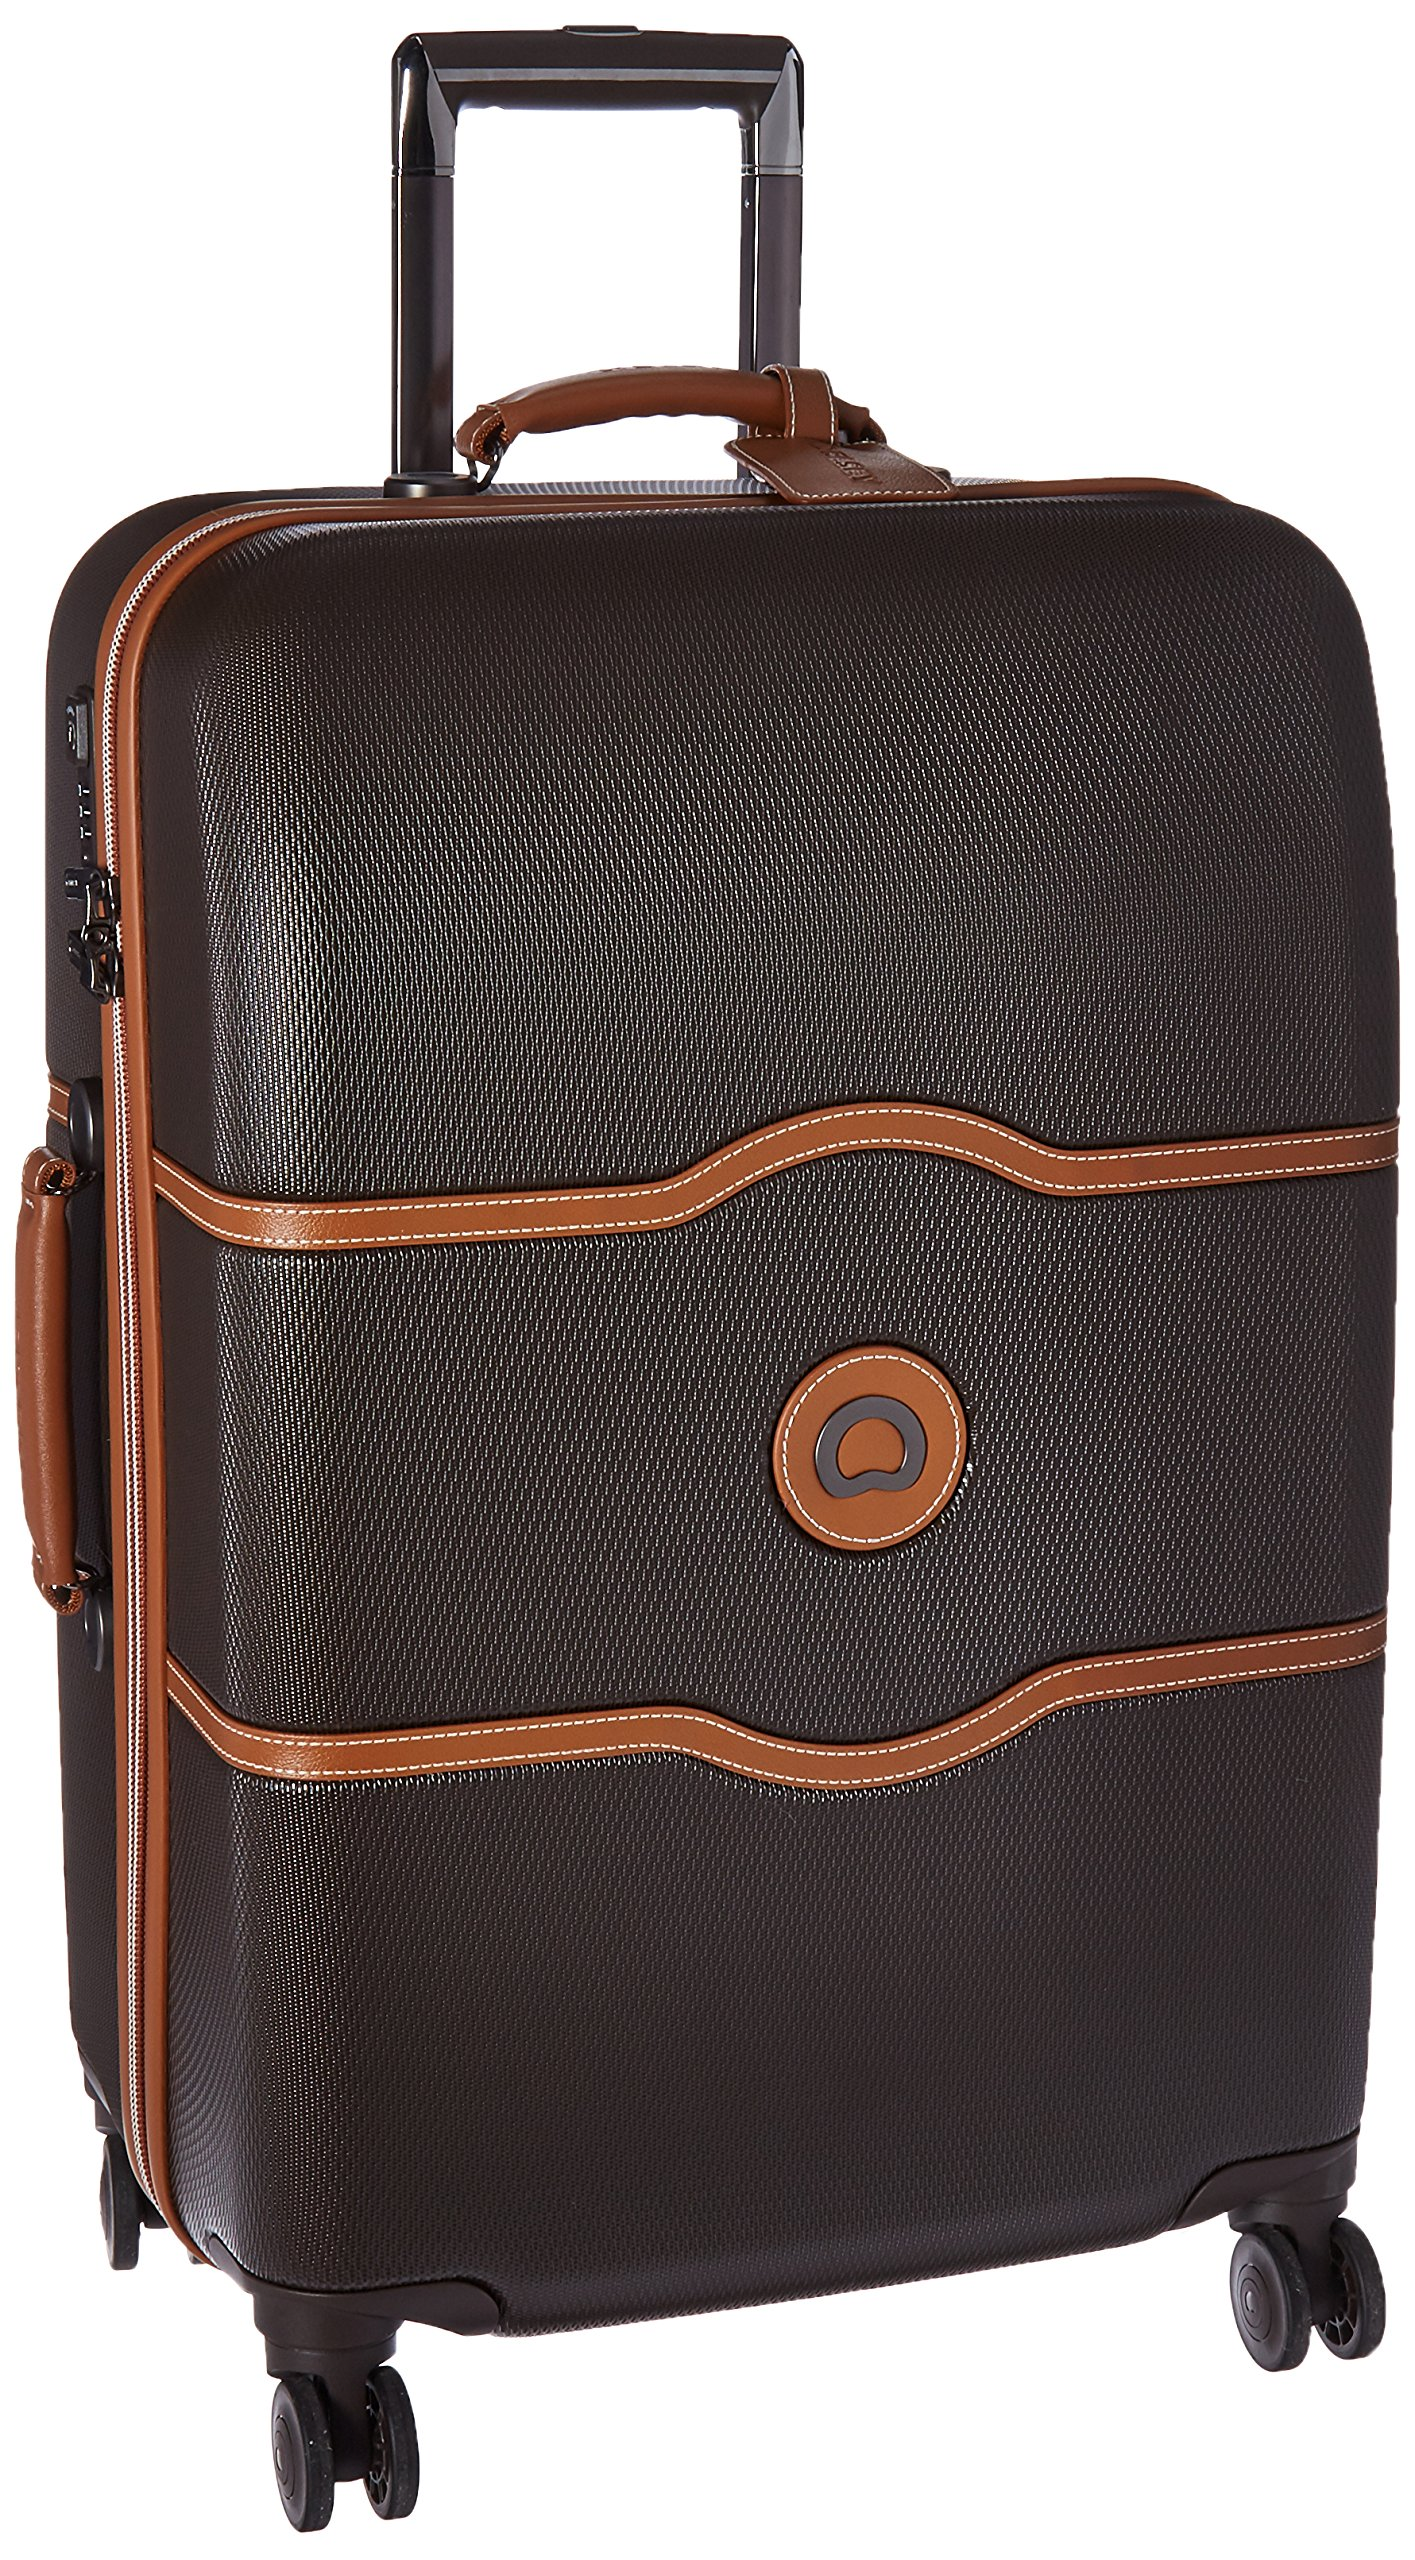 DELSEY Paris Luggage Chatelet Hard+ Medium Checked Spinner Suitcase Hardside with Lock, Chocolate